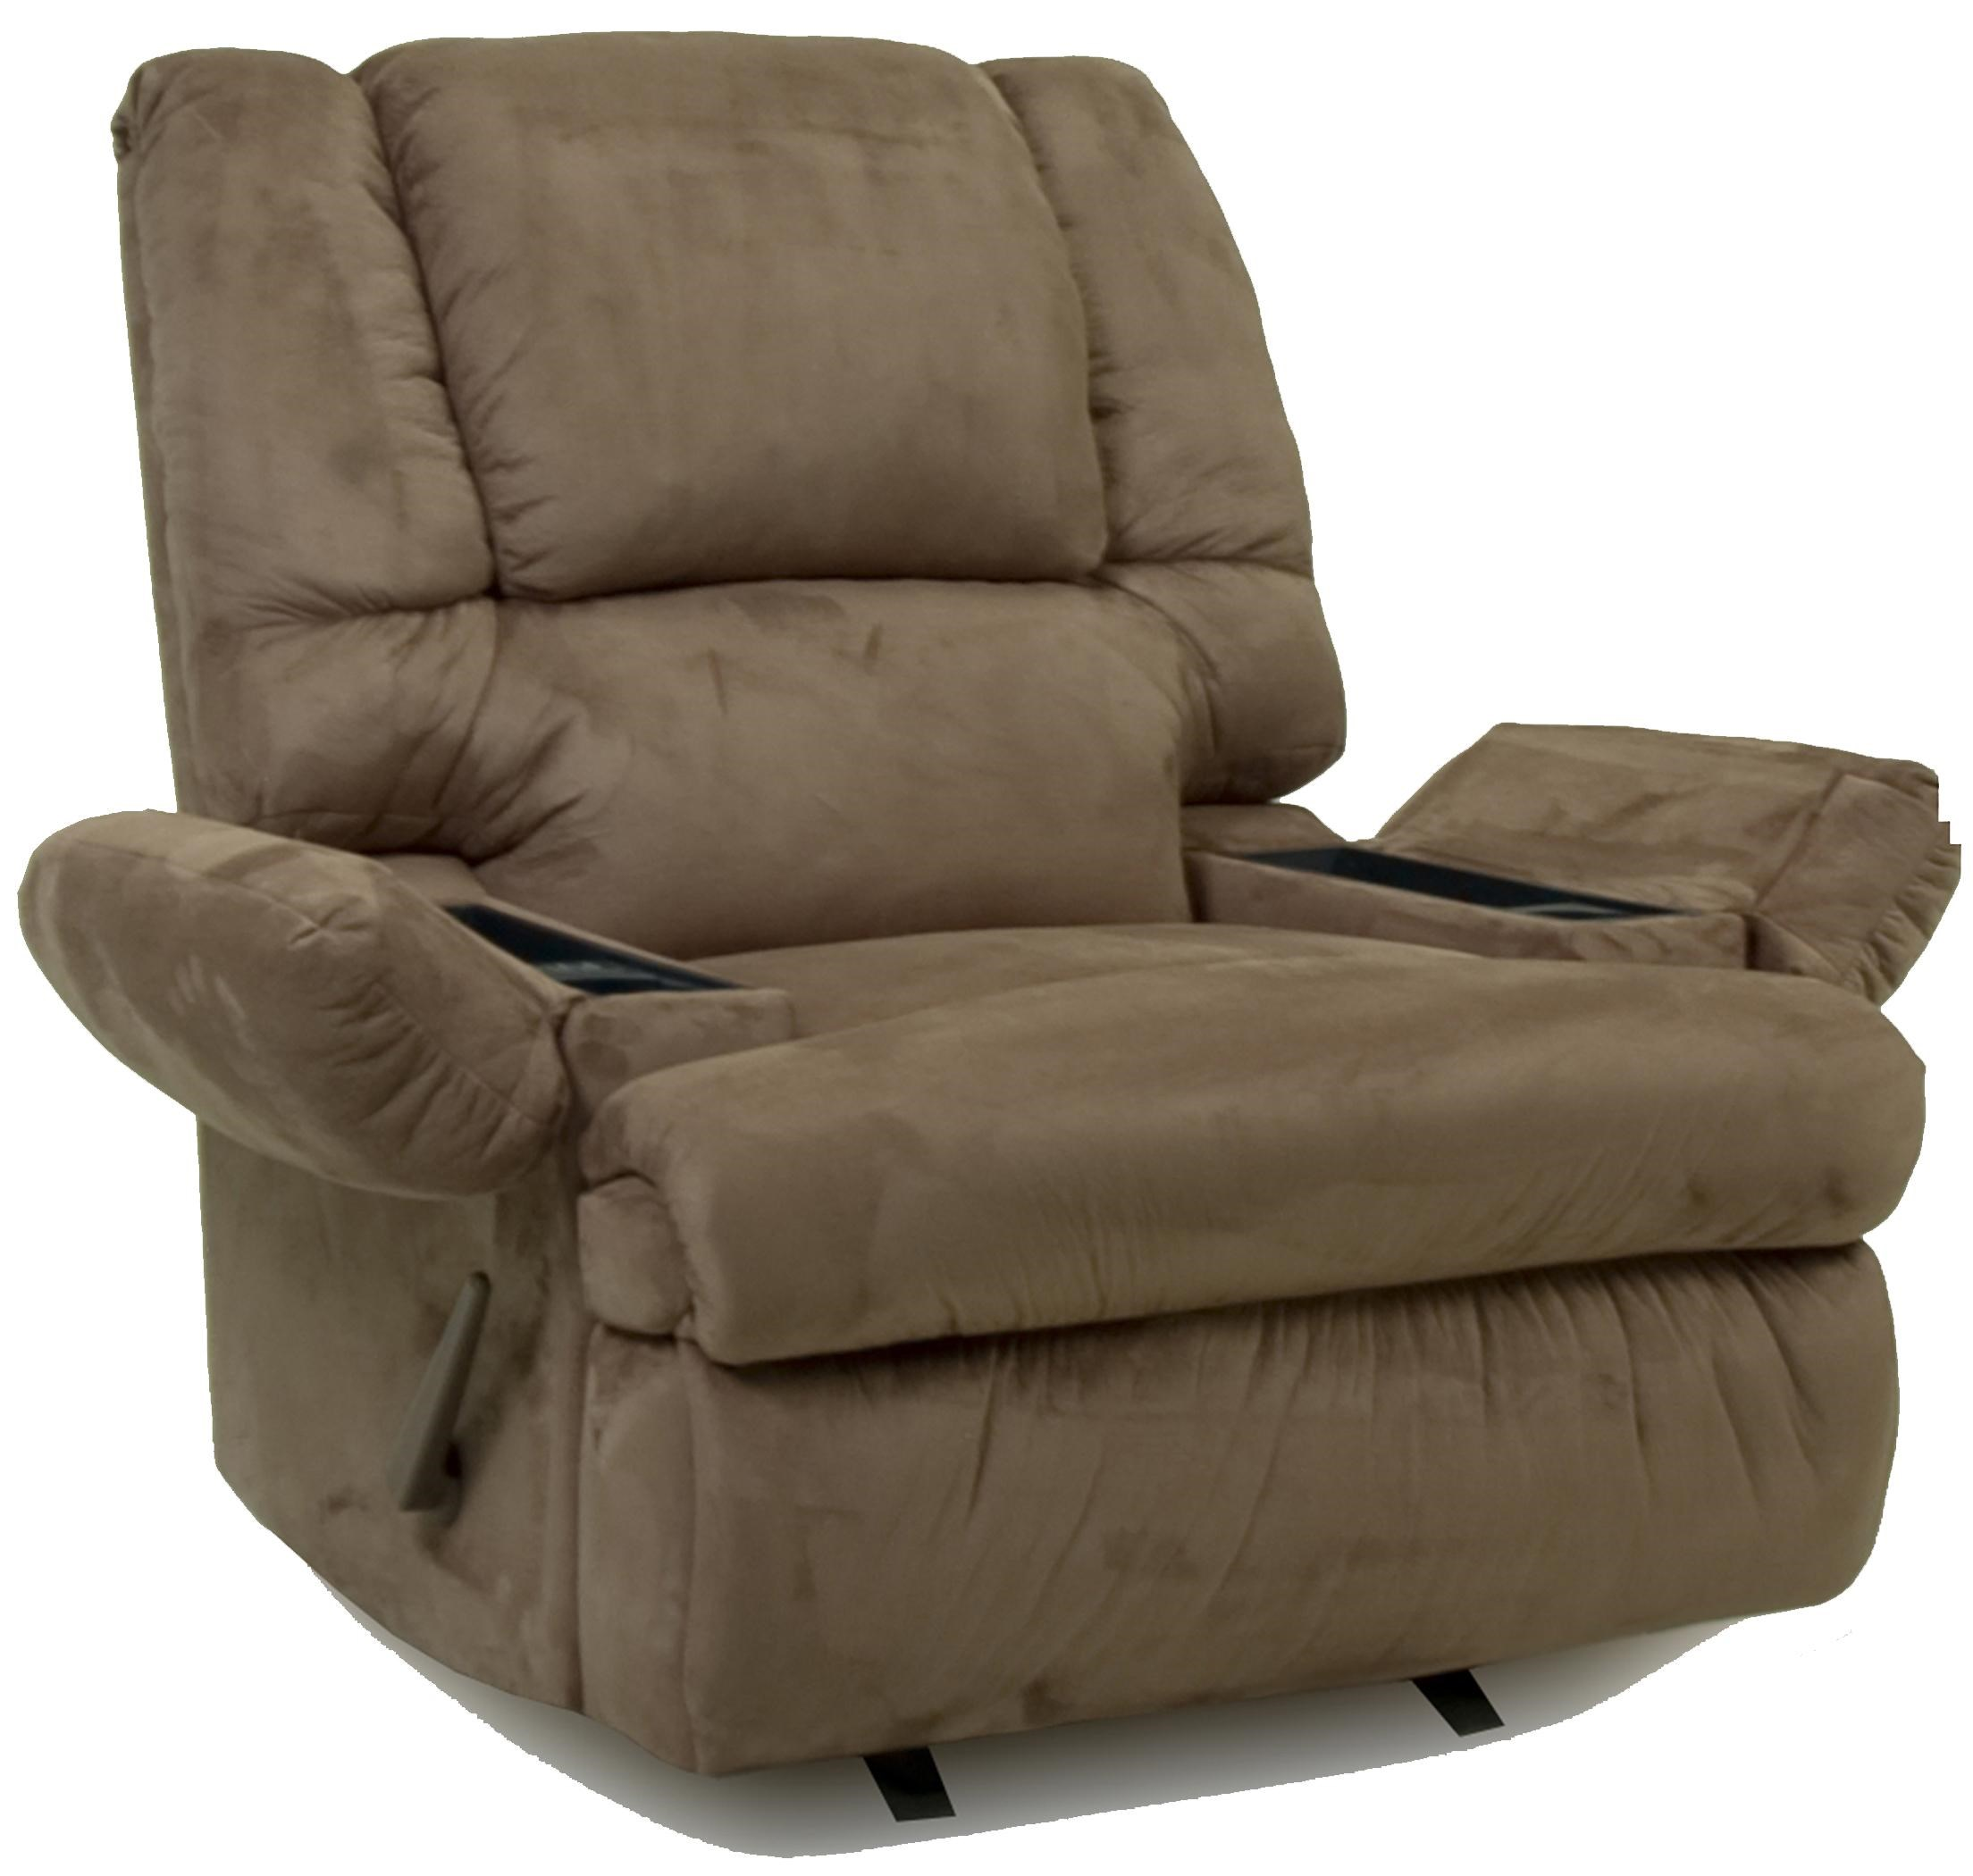 Franklin Rocker Recliners 5598 Power Chaise Rocker Recliner with Storage Arms  sc 1 st  Wilcox Furniture : franklin power recliner - islam-shia.org